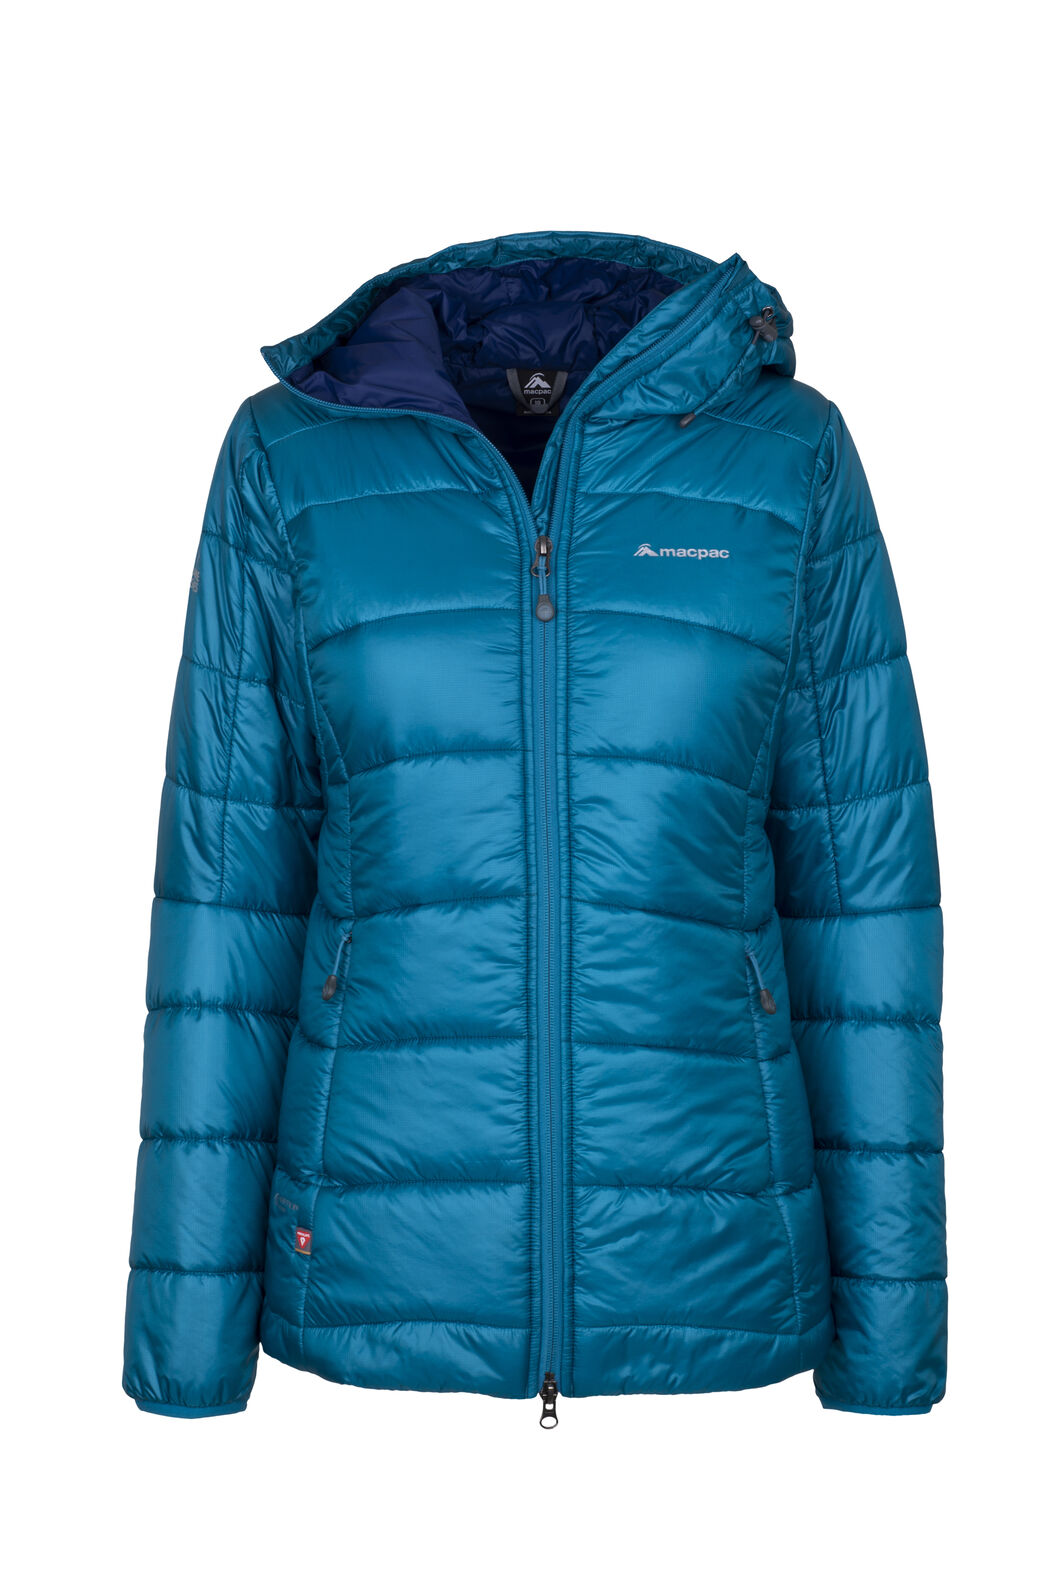 Macpac Pulsar Plus PrimaLoft® Hooded Jacket - Women's, Ocean Depths, hi-res